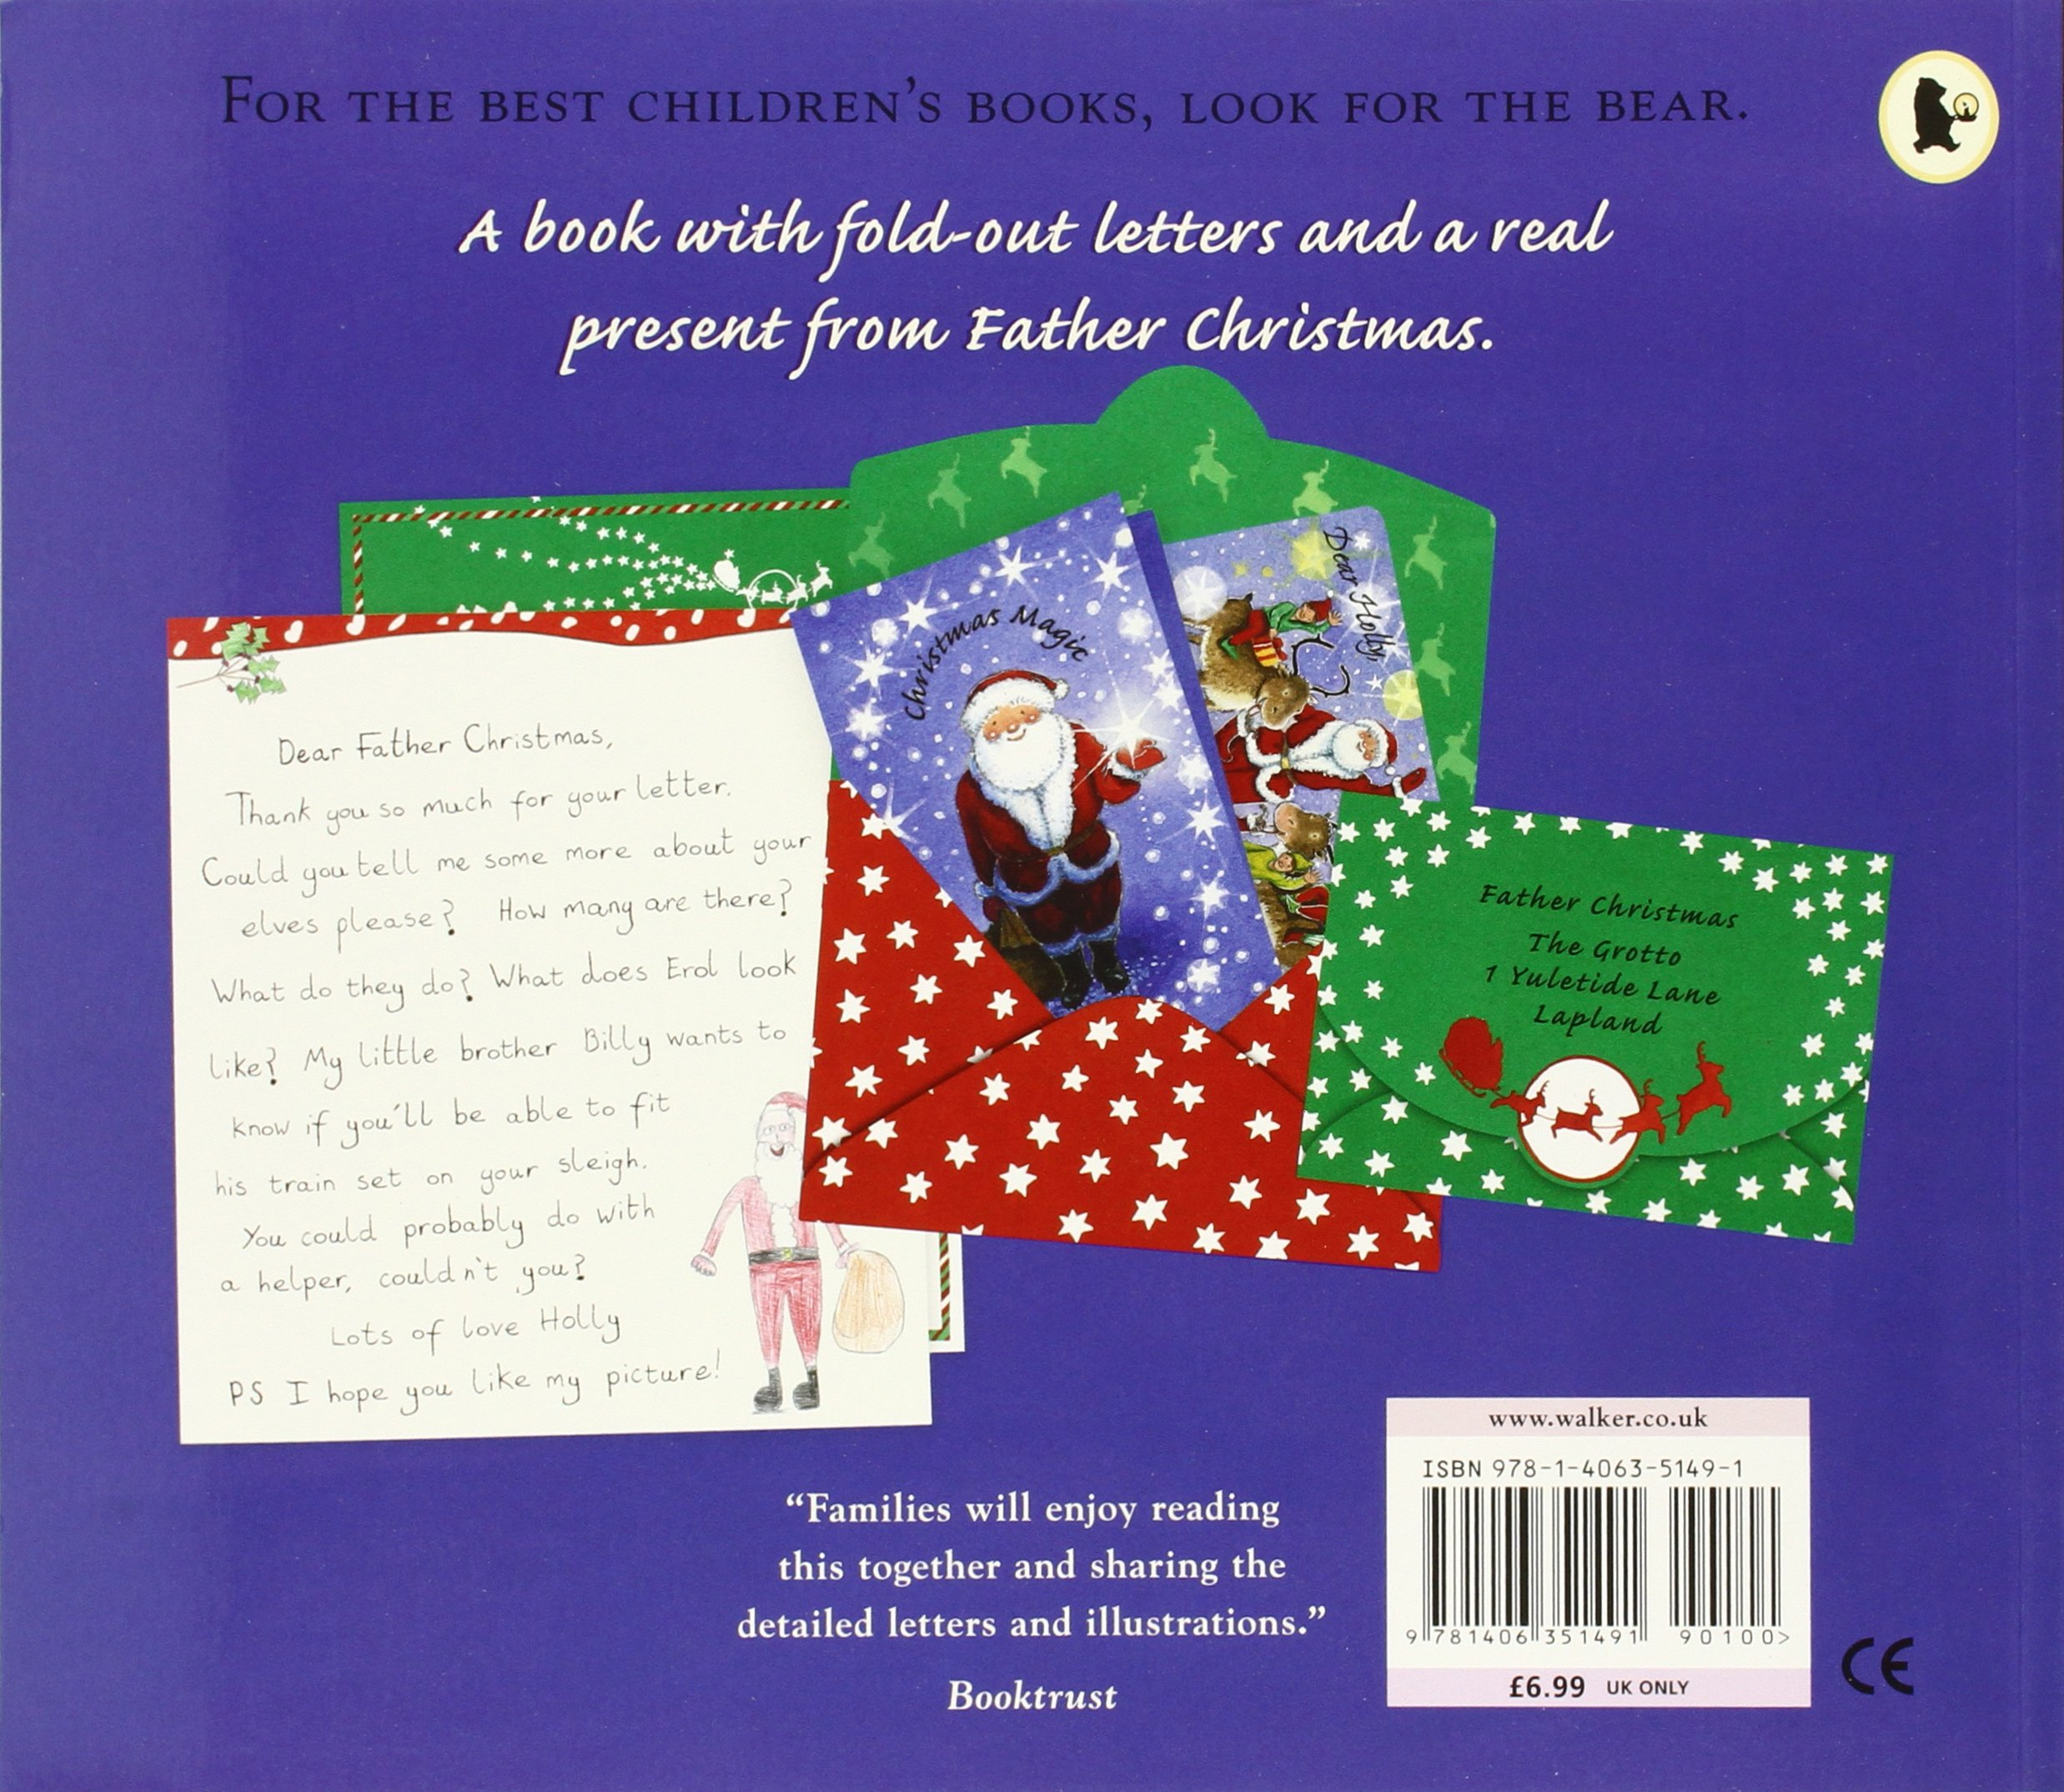 Dear father christmas amazon alan durant vanessa cabban dear father christmas amazon alan durant vanessa cabban 9781406351491 books spiritdancerdesigns Gallery